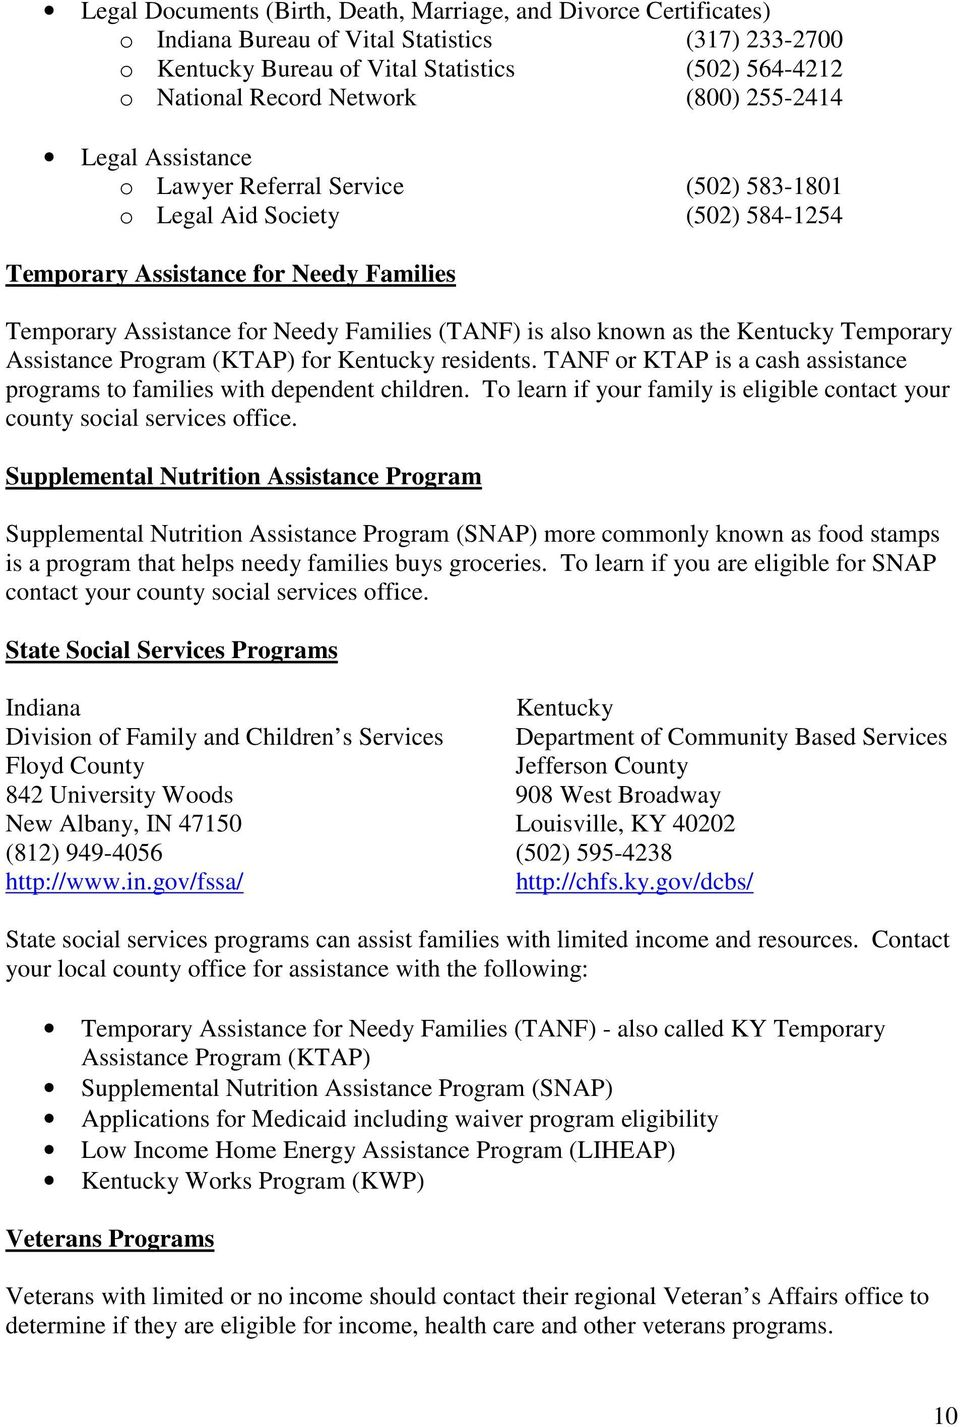 also known as the Kentucky Temporary Assistance Program (KTAP) for Kentucky residents. TANF or KTAP is a cash assistance programs to families with dependent children.